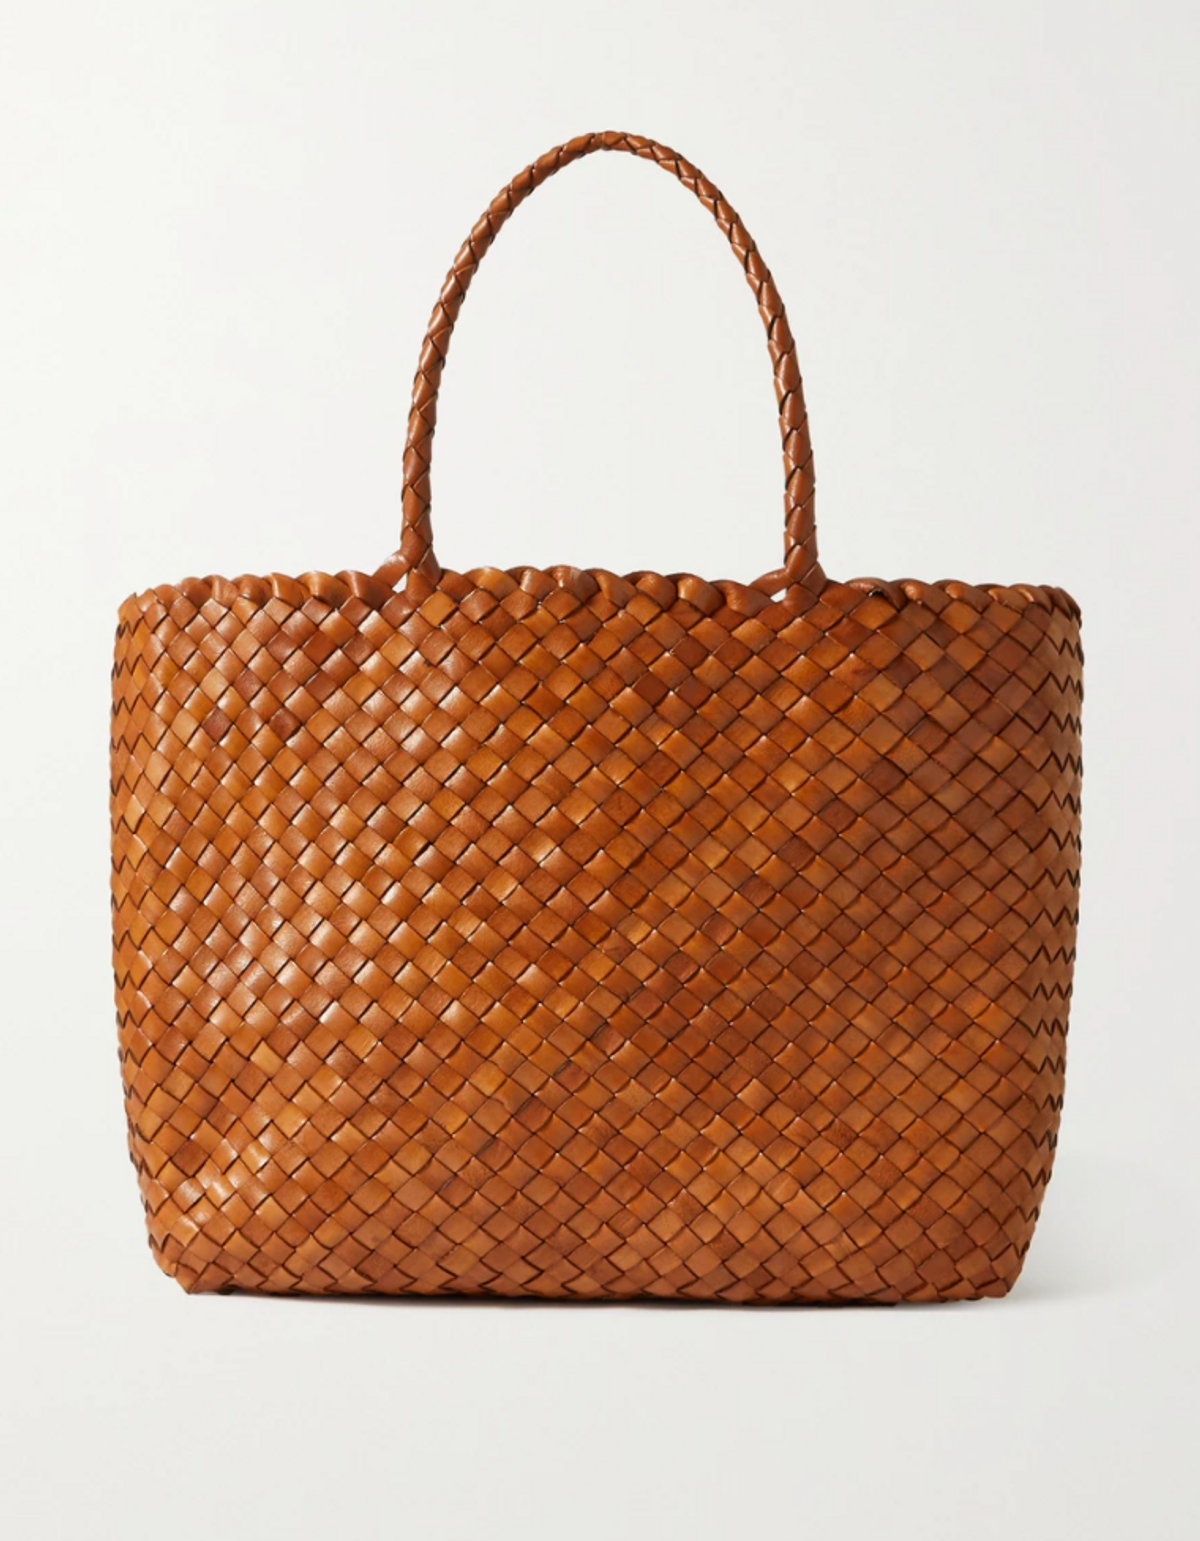 Lunch Basket Woven Leather Tote